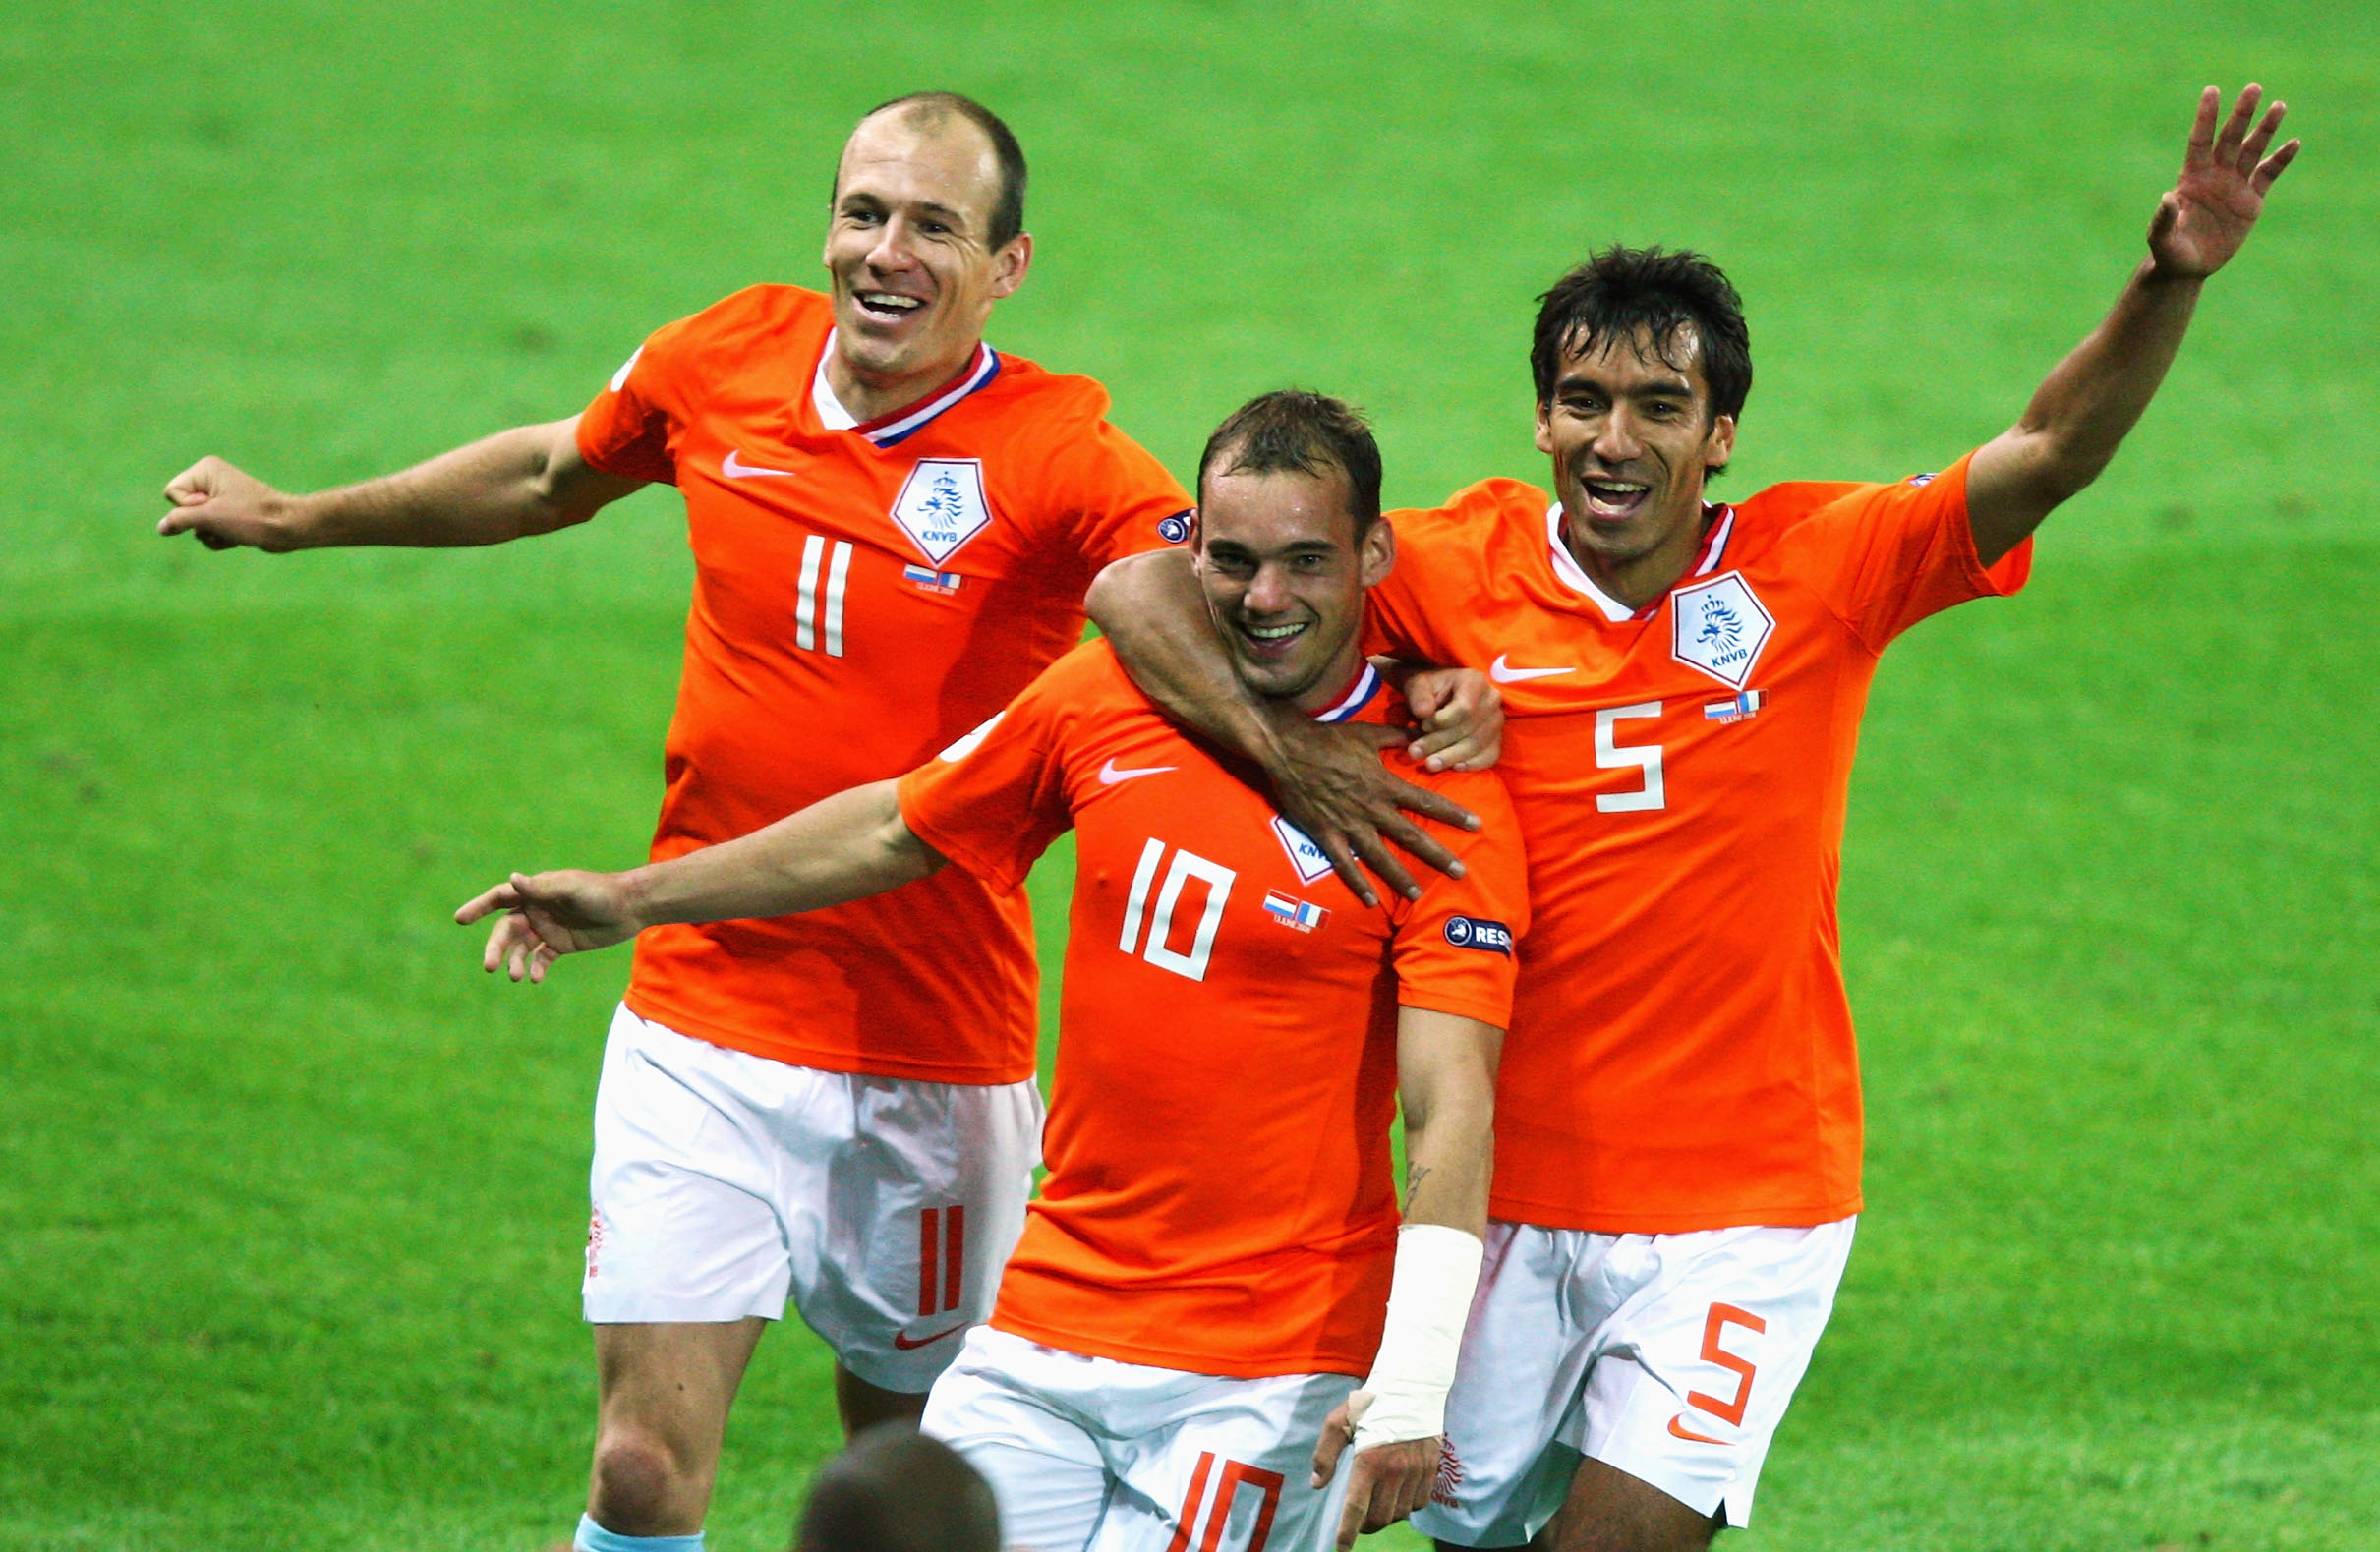 http://www.whoateallthepies.tv/sneijder%20holland%20italy.jpg